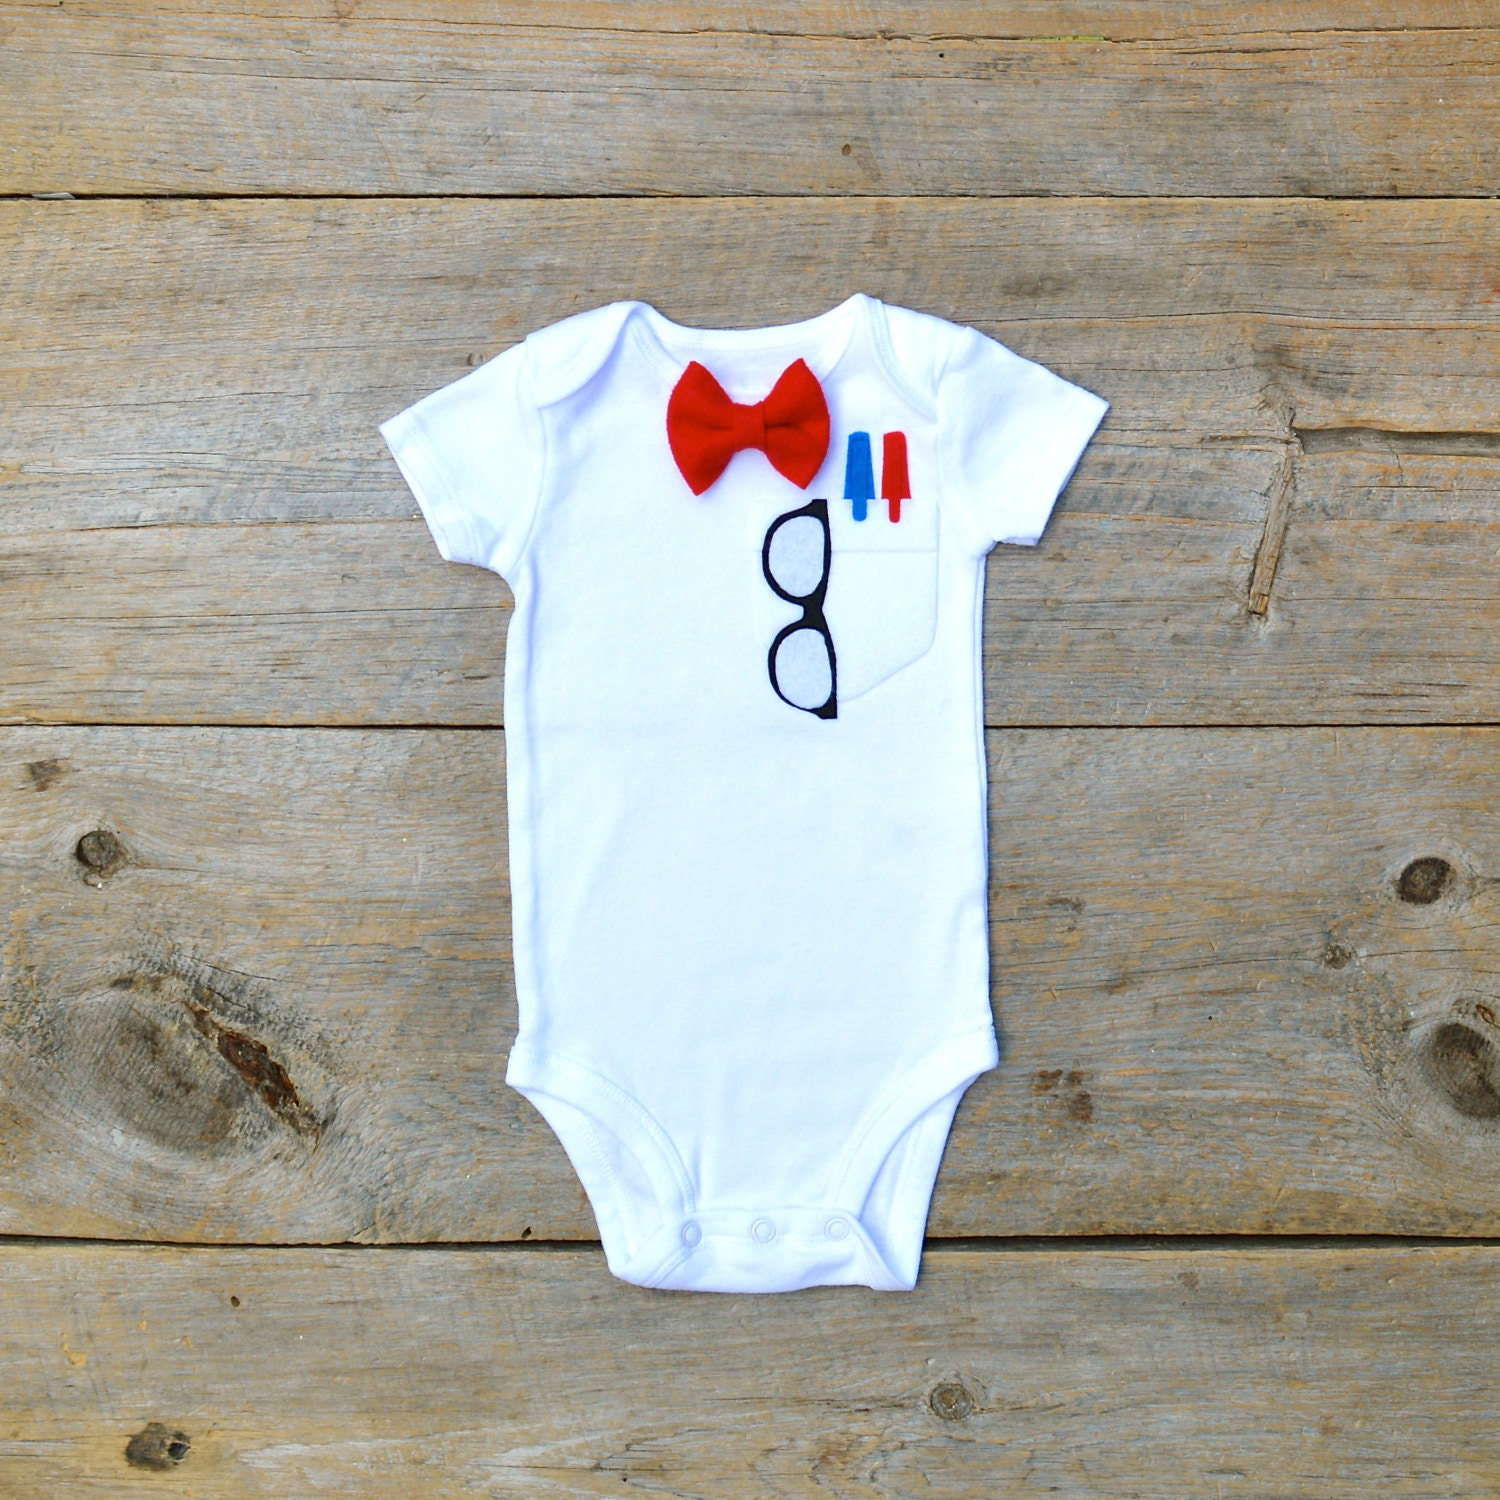 Ber Geek Baby Clothes